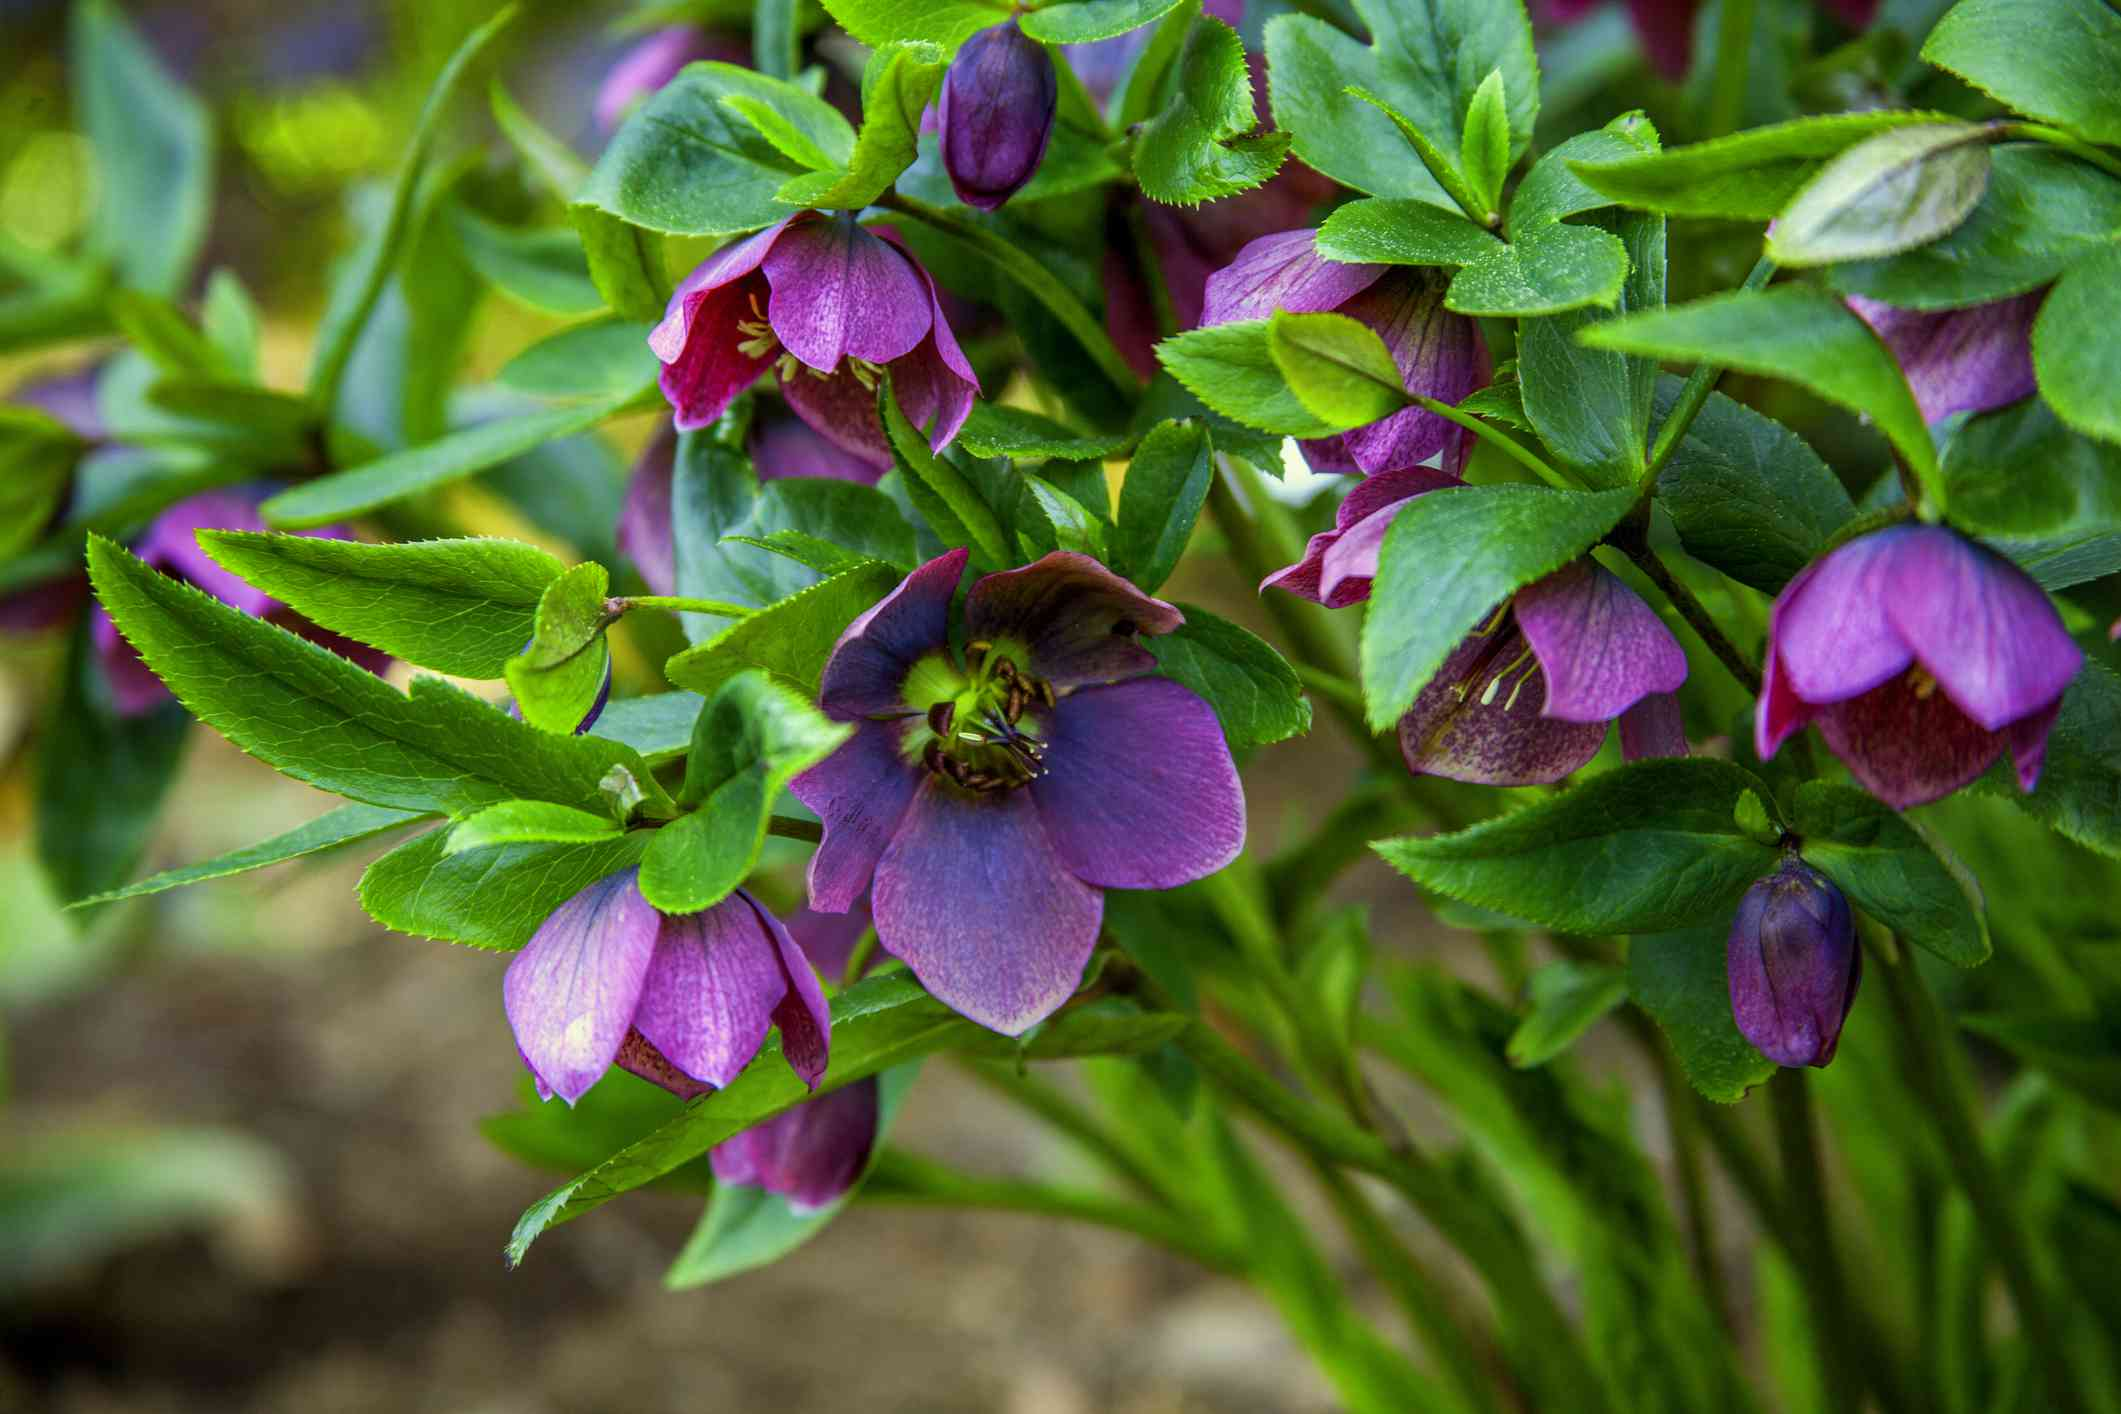 purple hellebore flowers with green stems and leaves